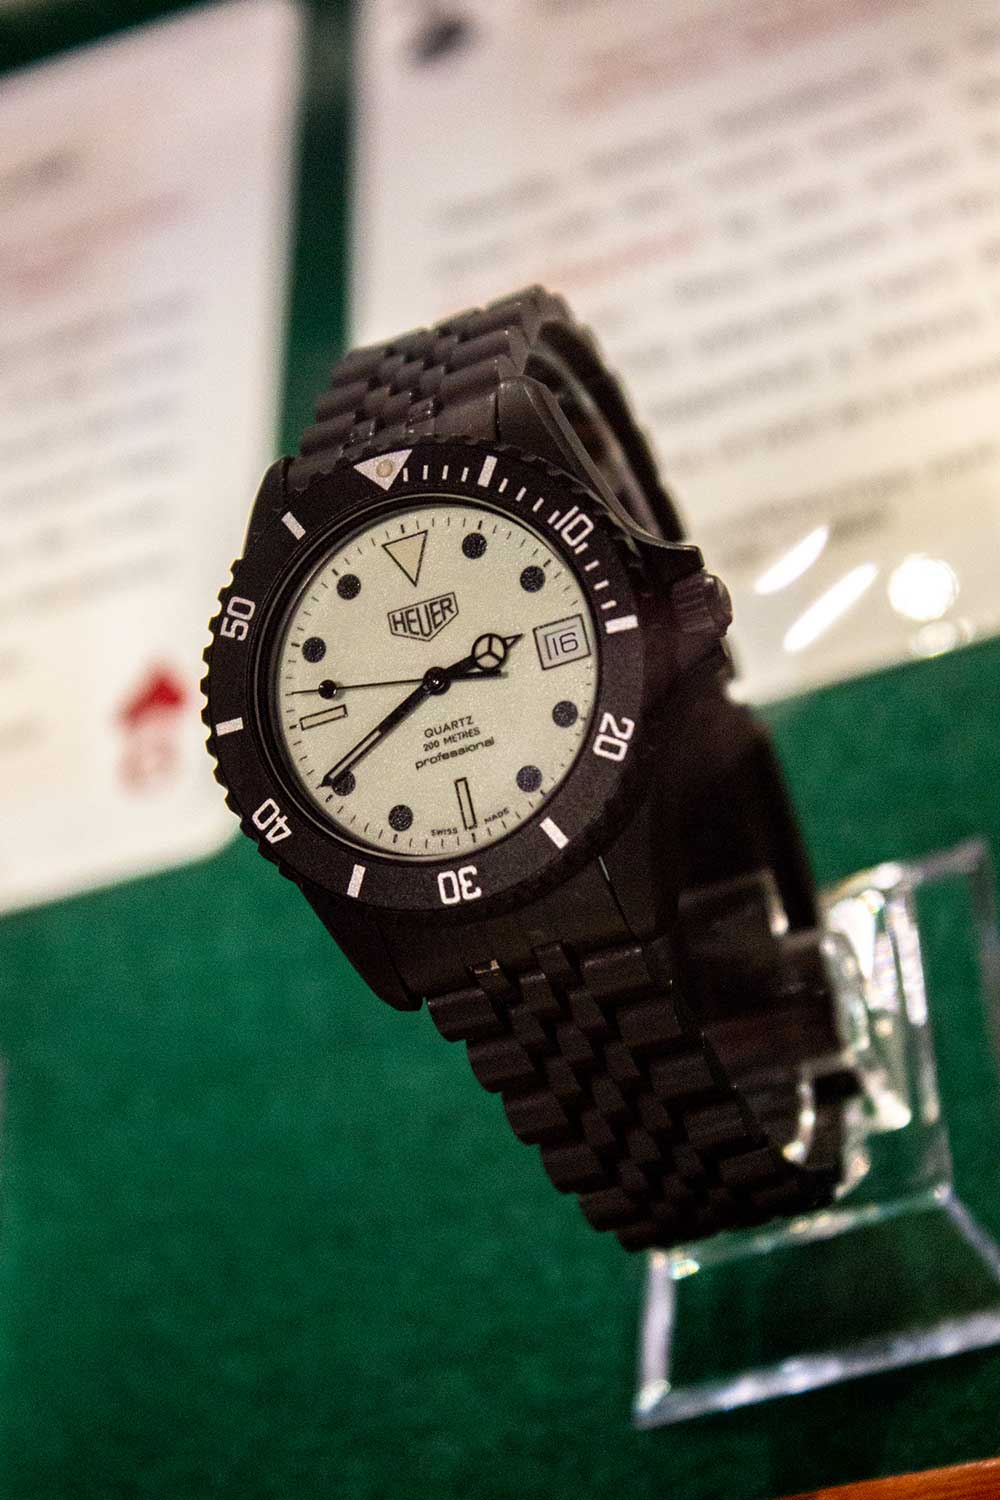 TAG Heuer Night Diver 980.031 Swiss quartz watch